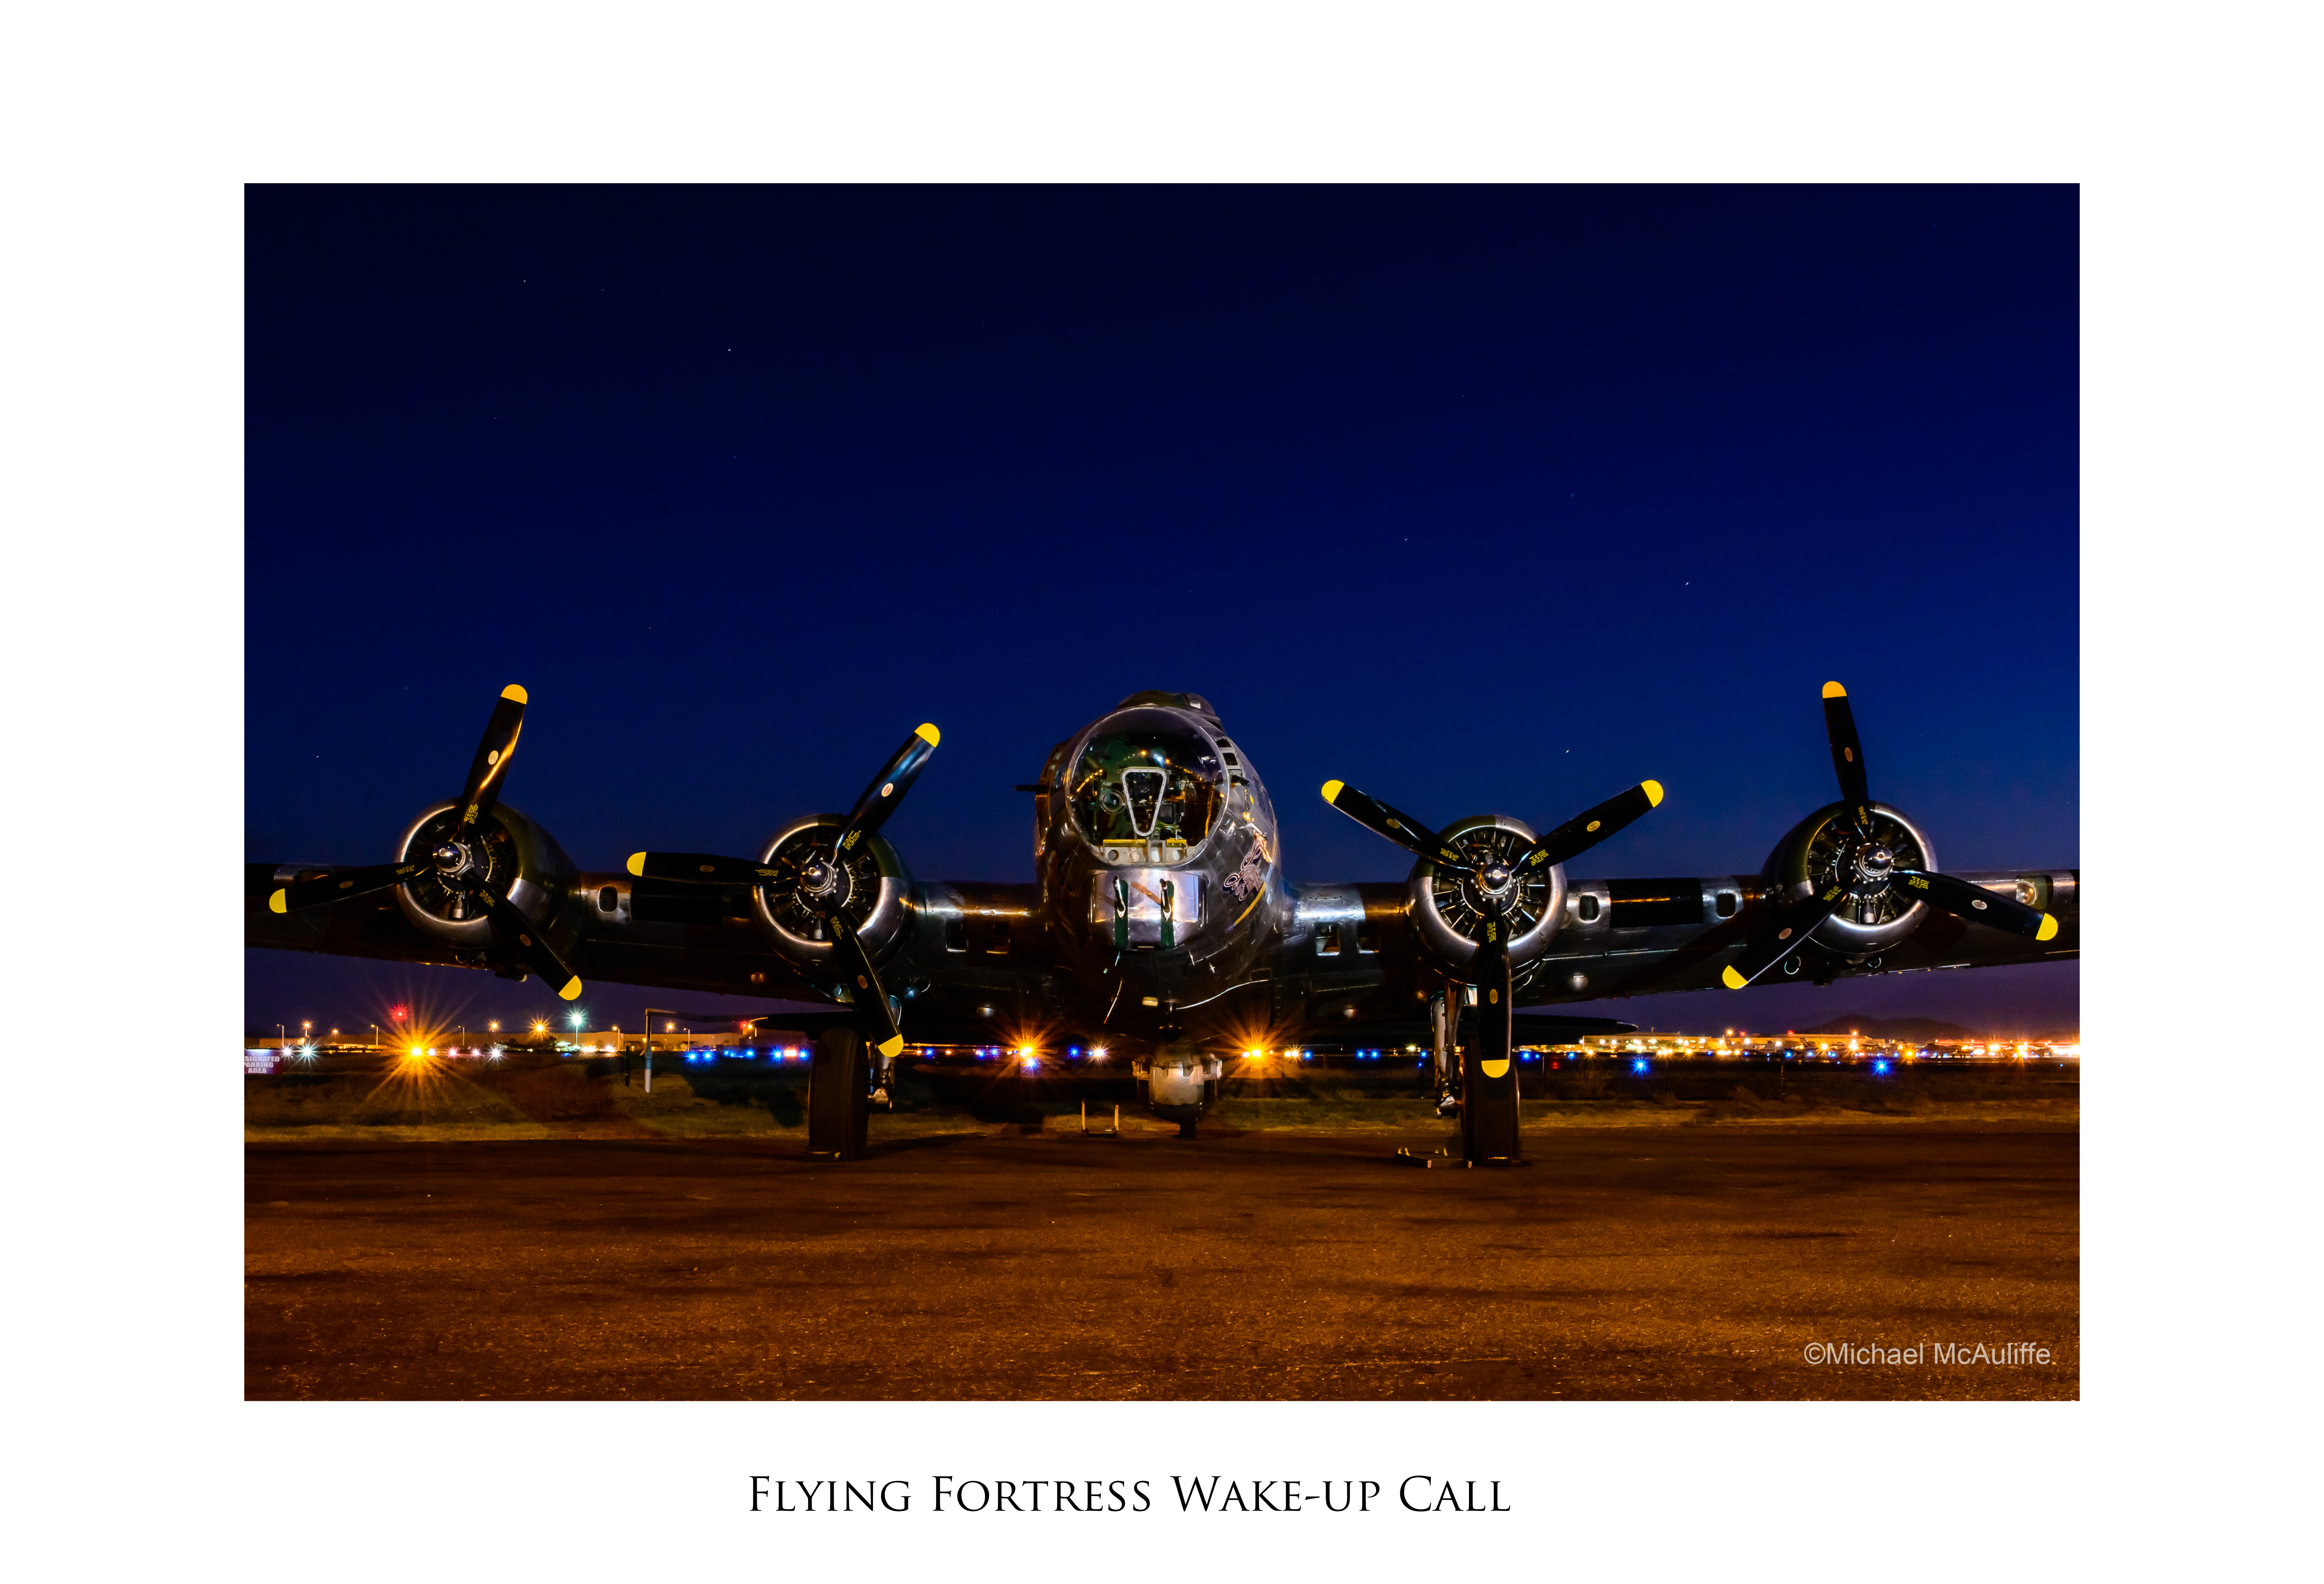 B-17G photograph in Museum of Flight Spirit of Flight Photo Exhibition.